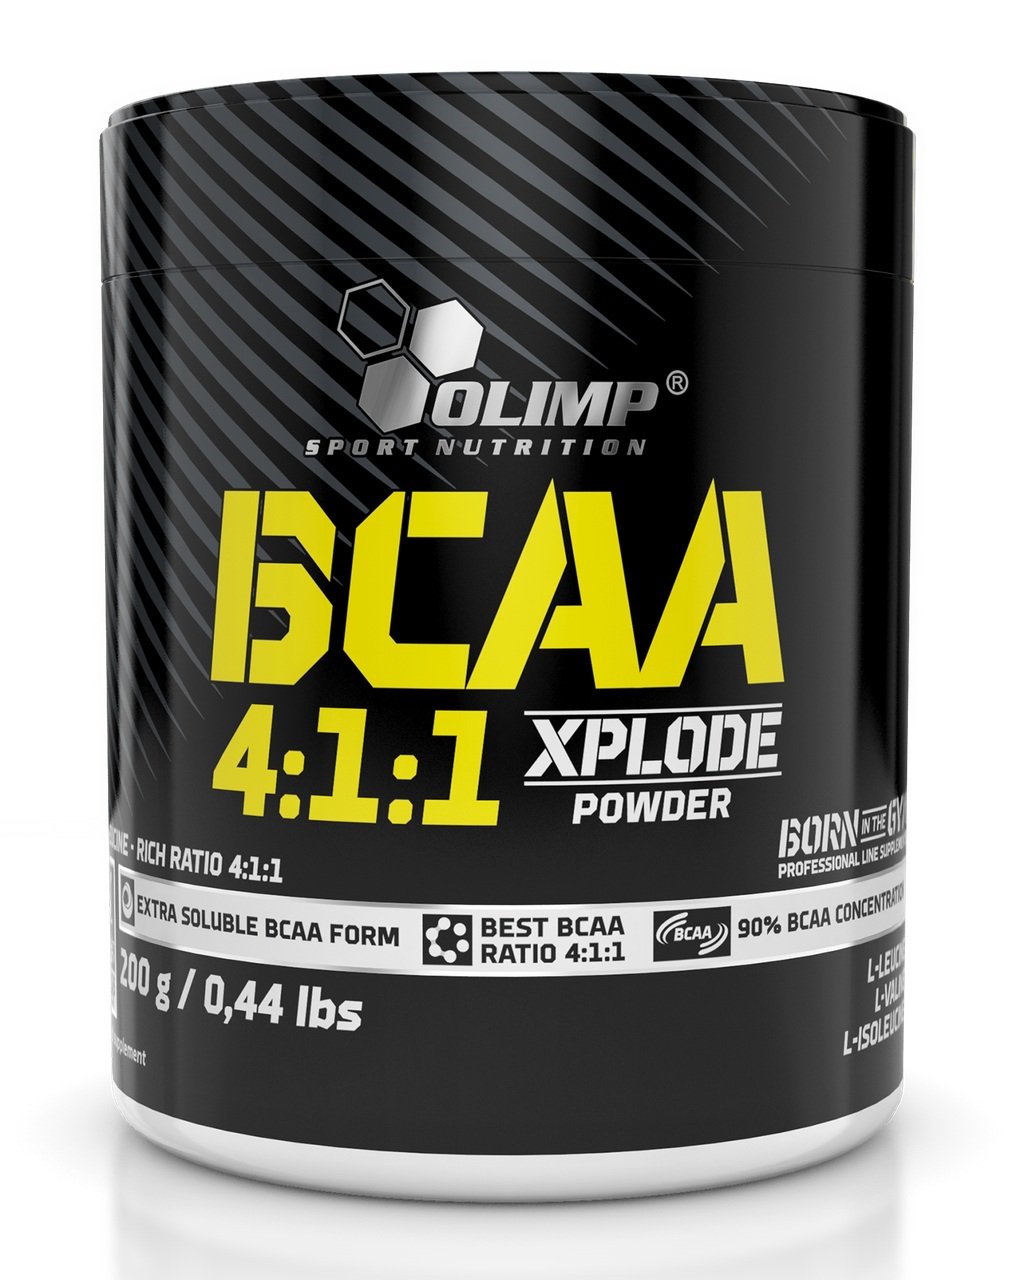 BCAA 4:1:1 Xplode Powder Olimp (200 g)